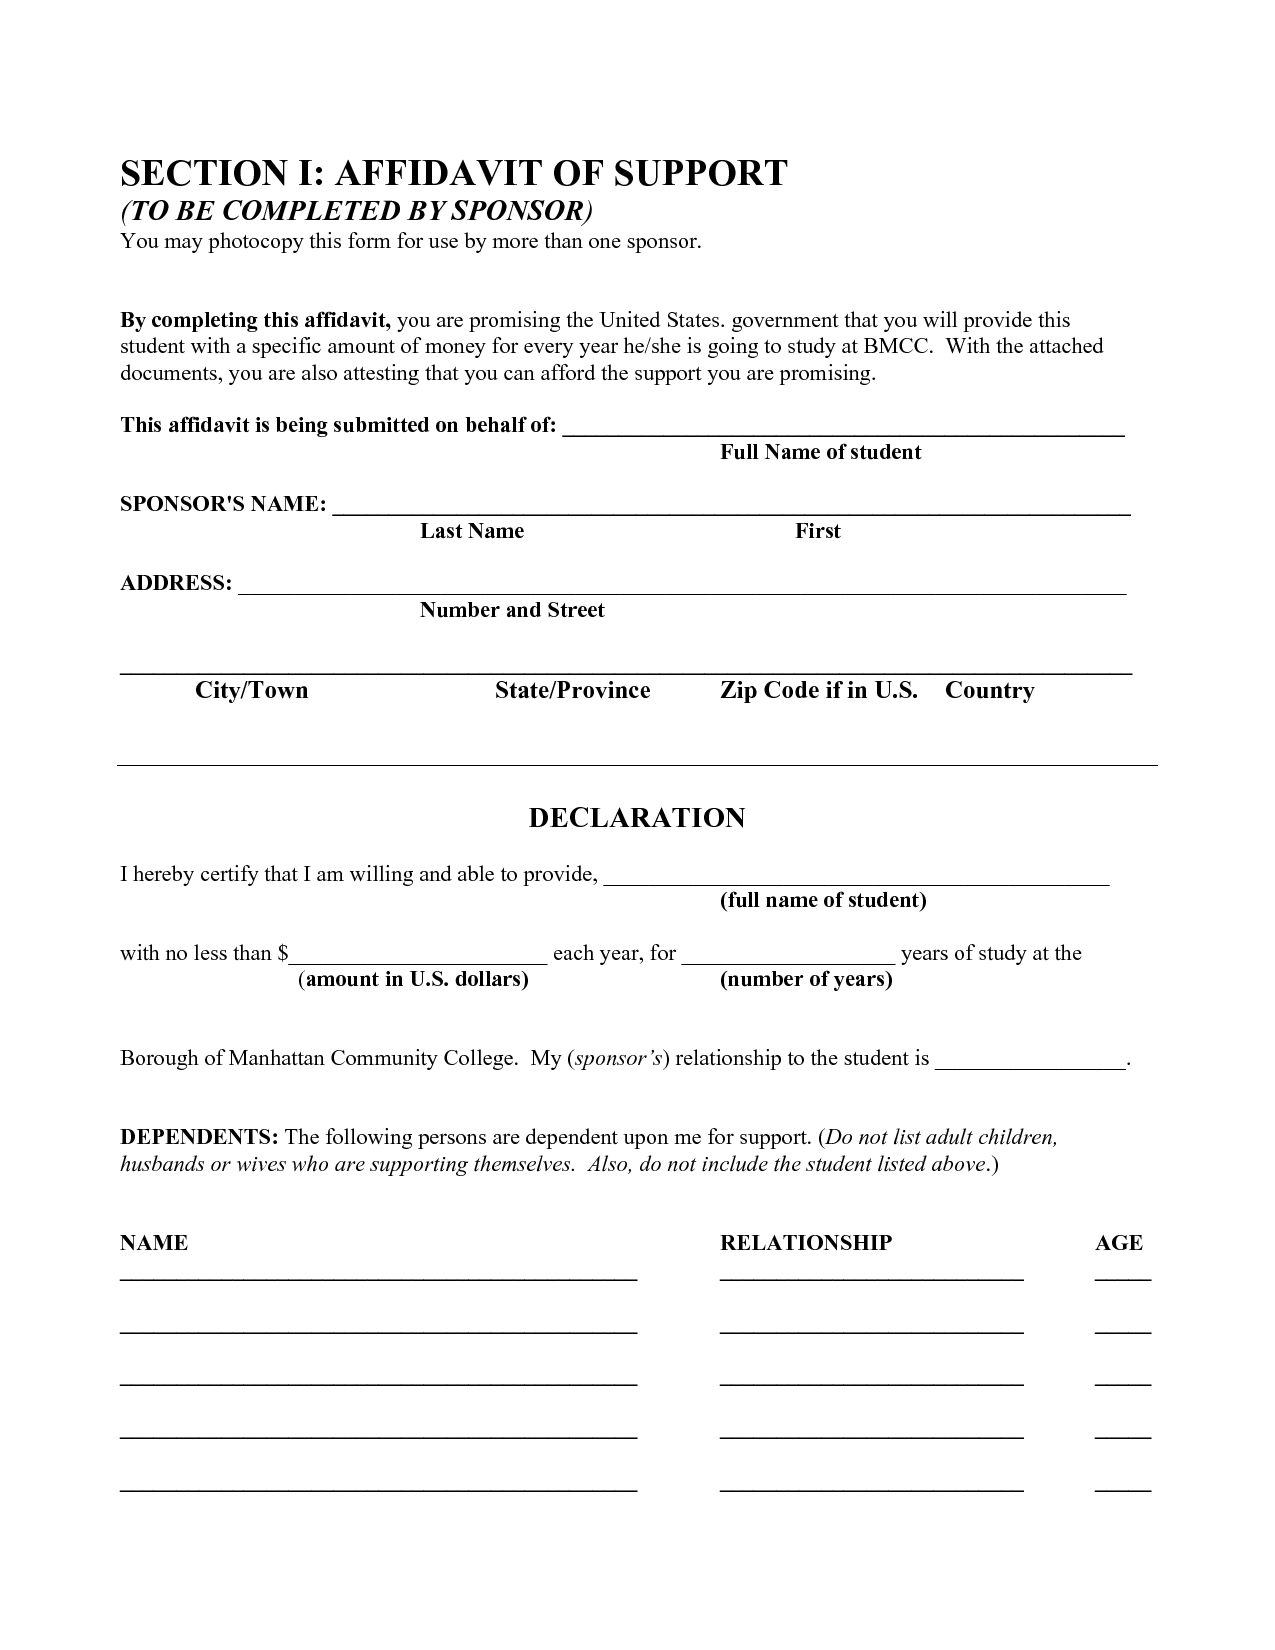 Free Affidavit Form By BeunaventuraLongjas Affidavit Templates - Legal will documents for free